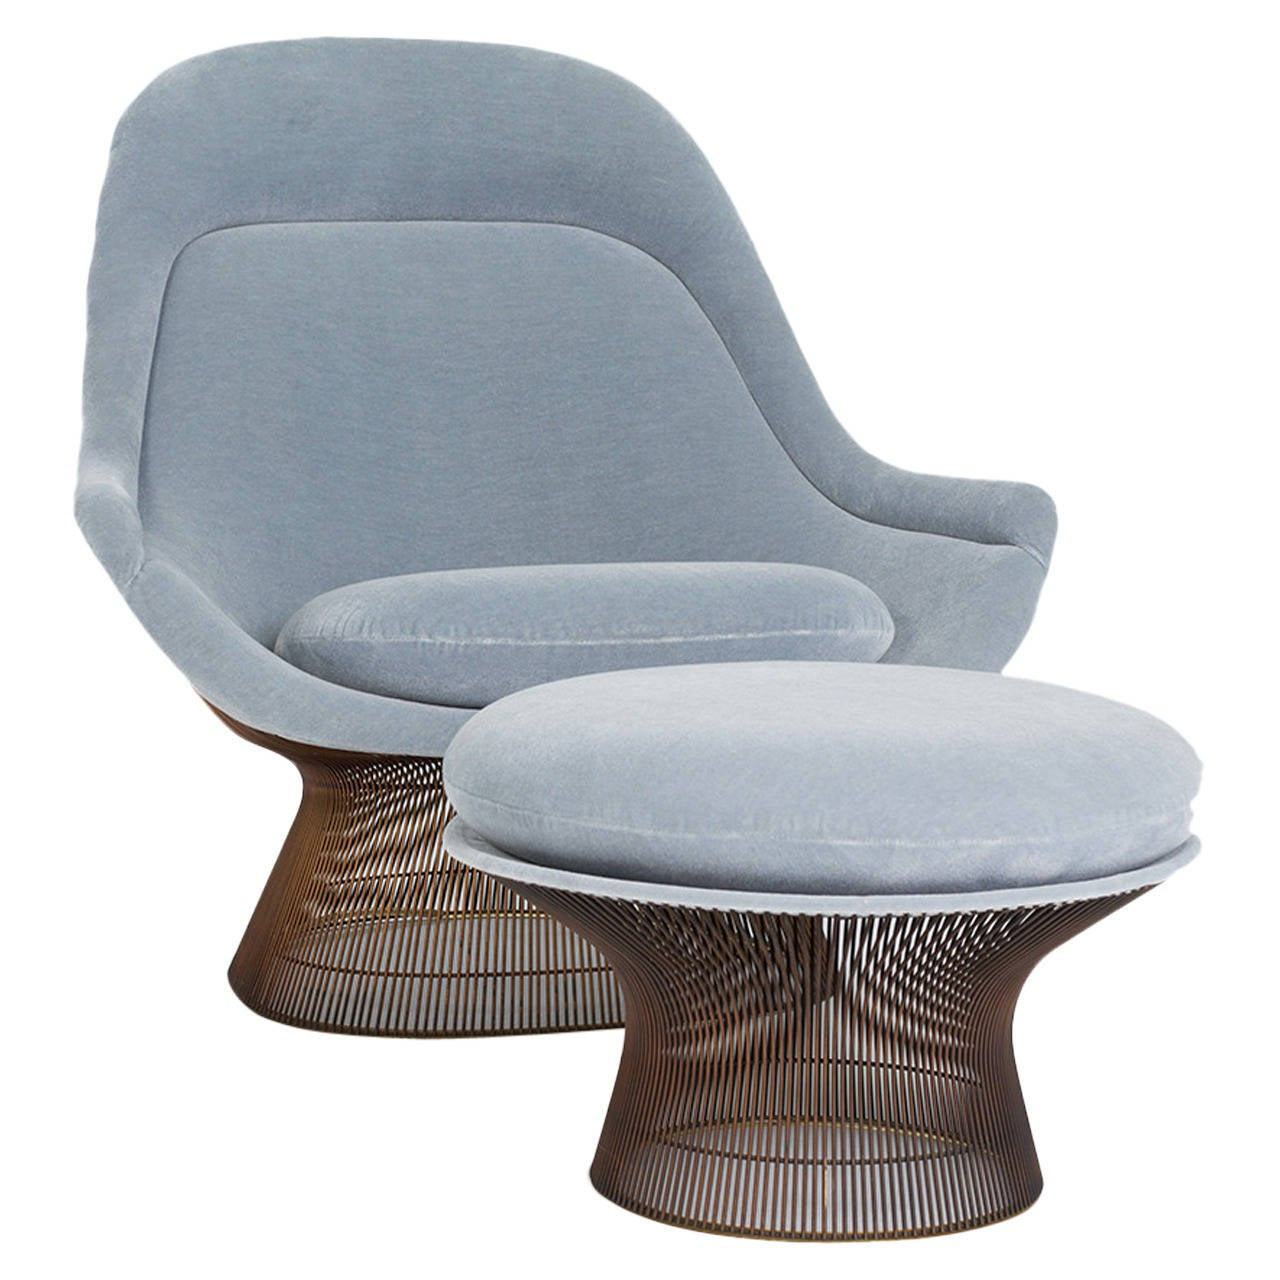 warren platner lounge chair and ottoman for knoll at 1stdibs